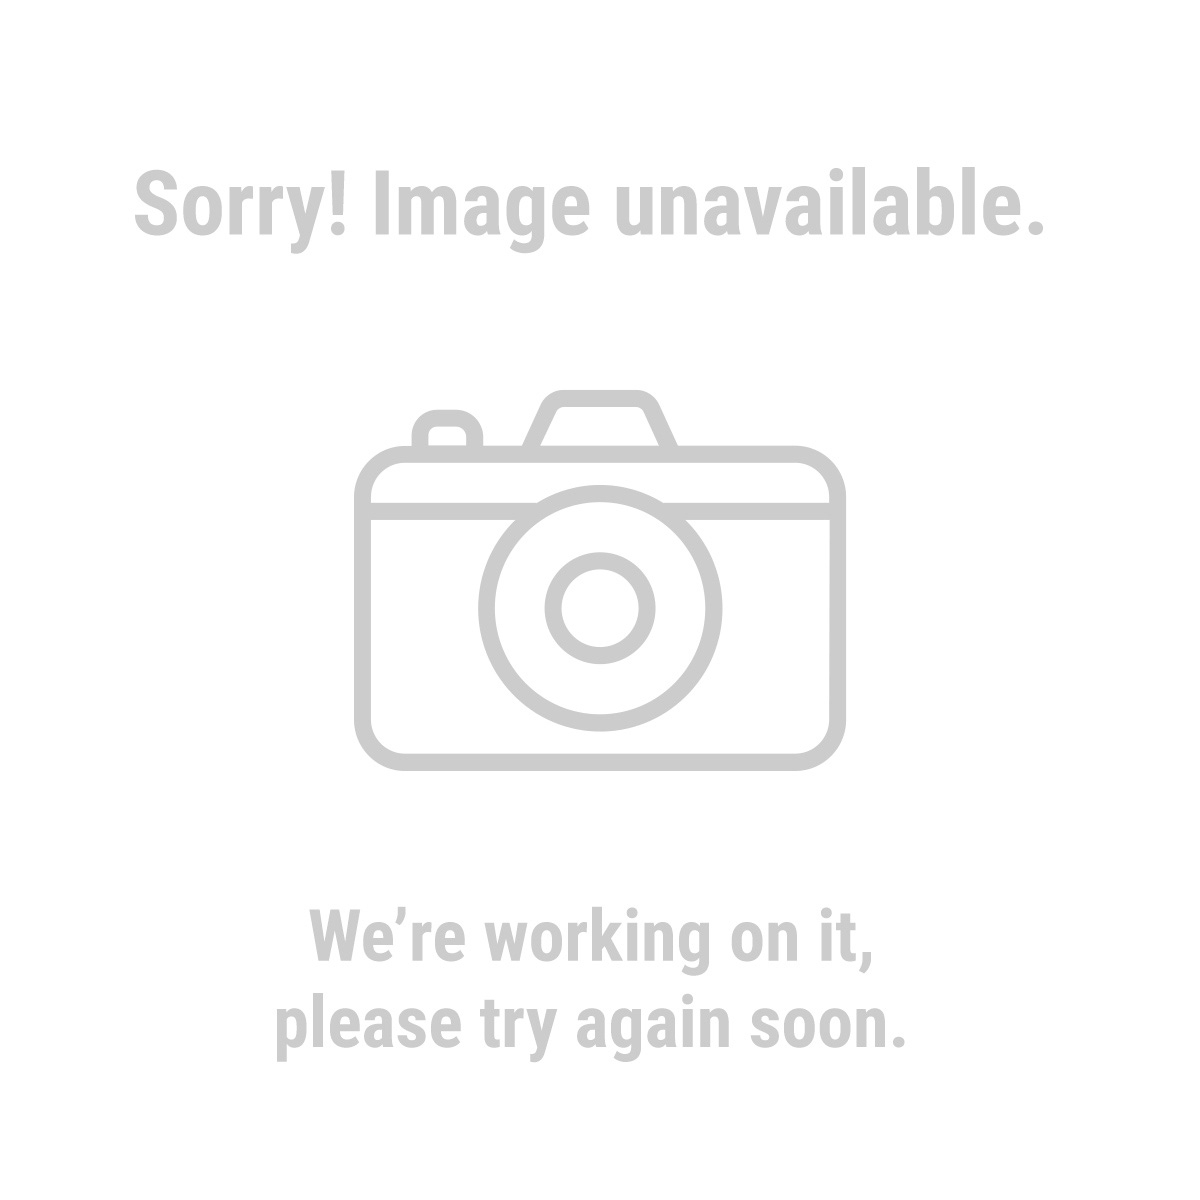 50 Piece Dust and Particle Masks